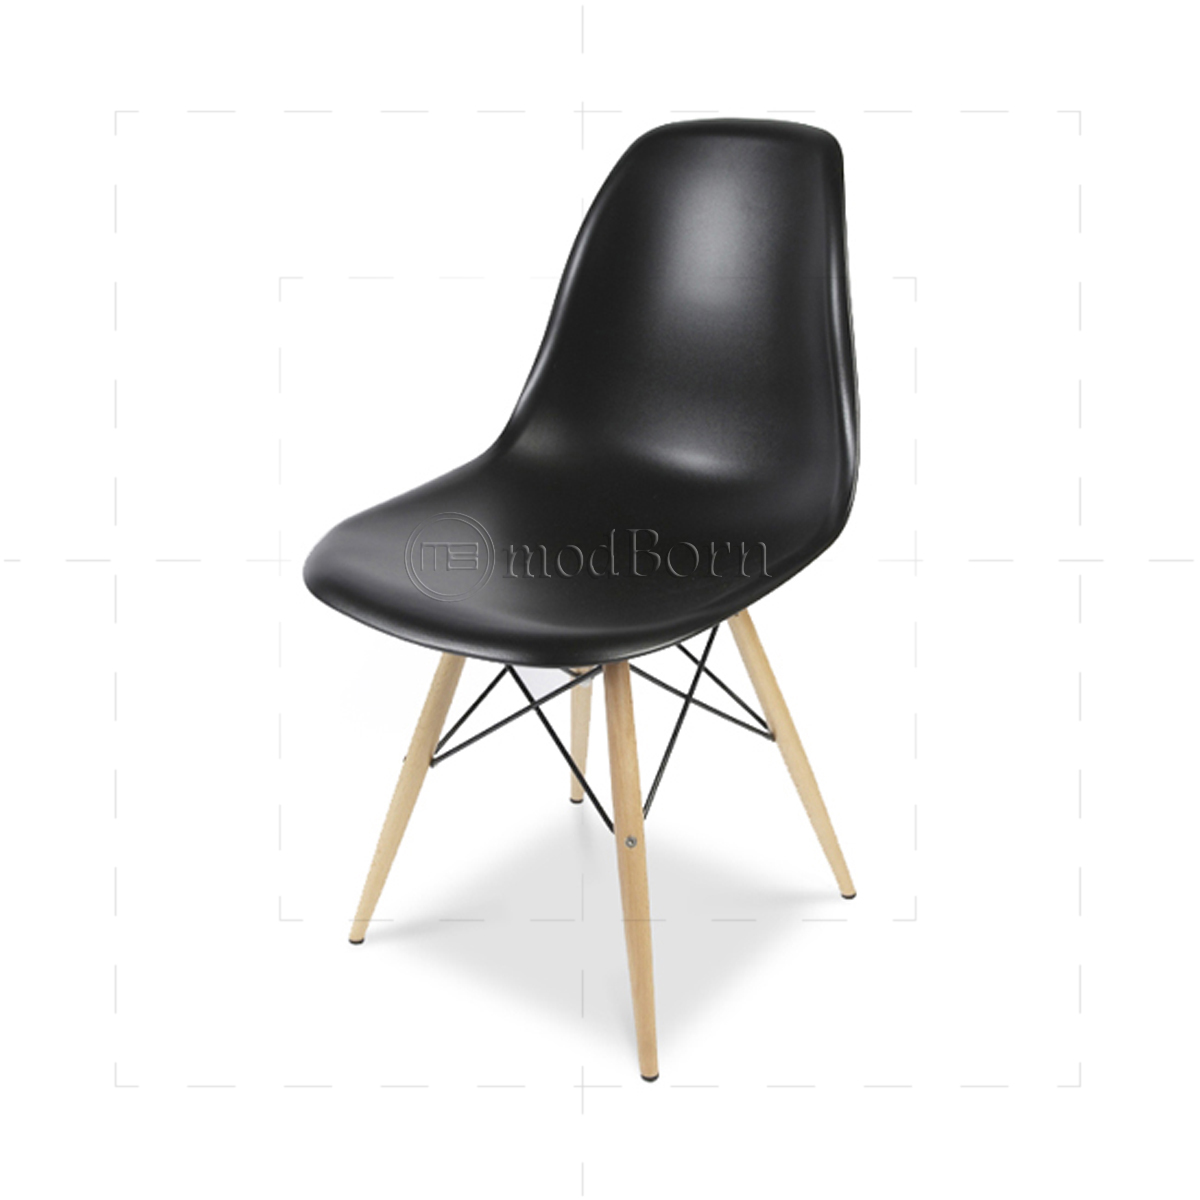 Eames style dining dsw chair black replica for Eames dsw replica